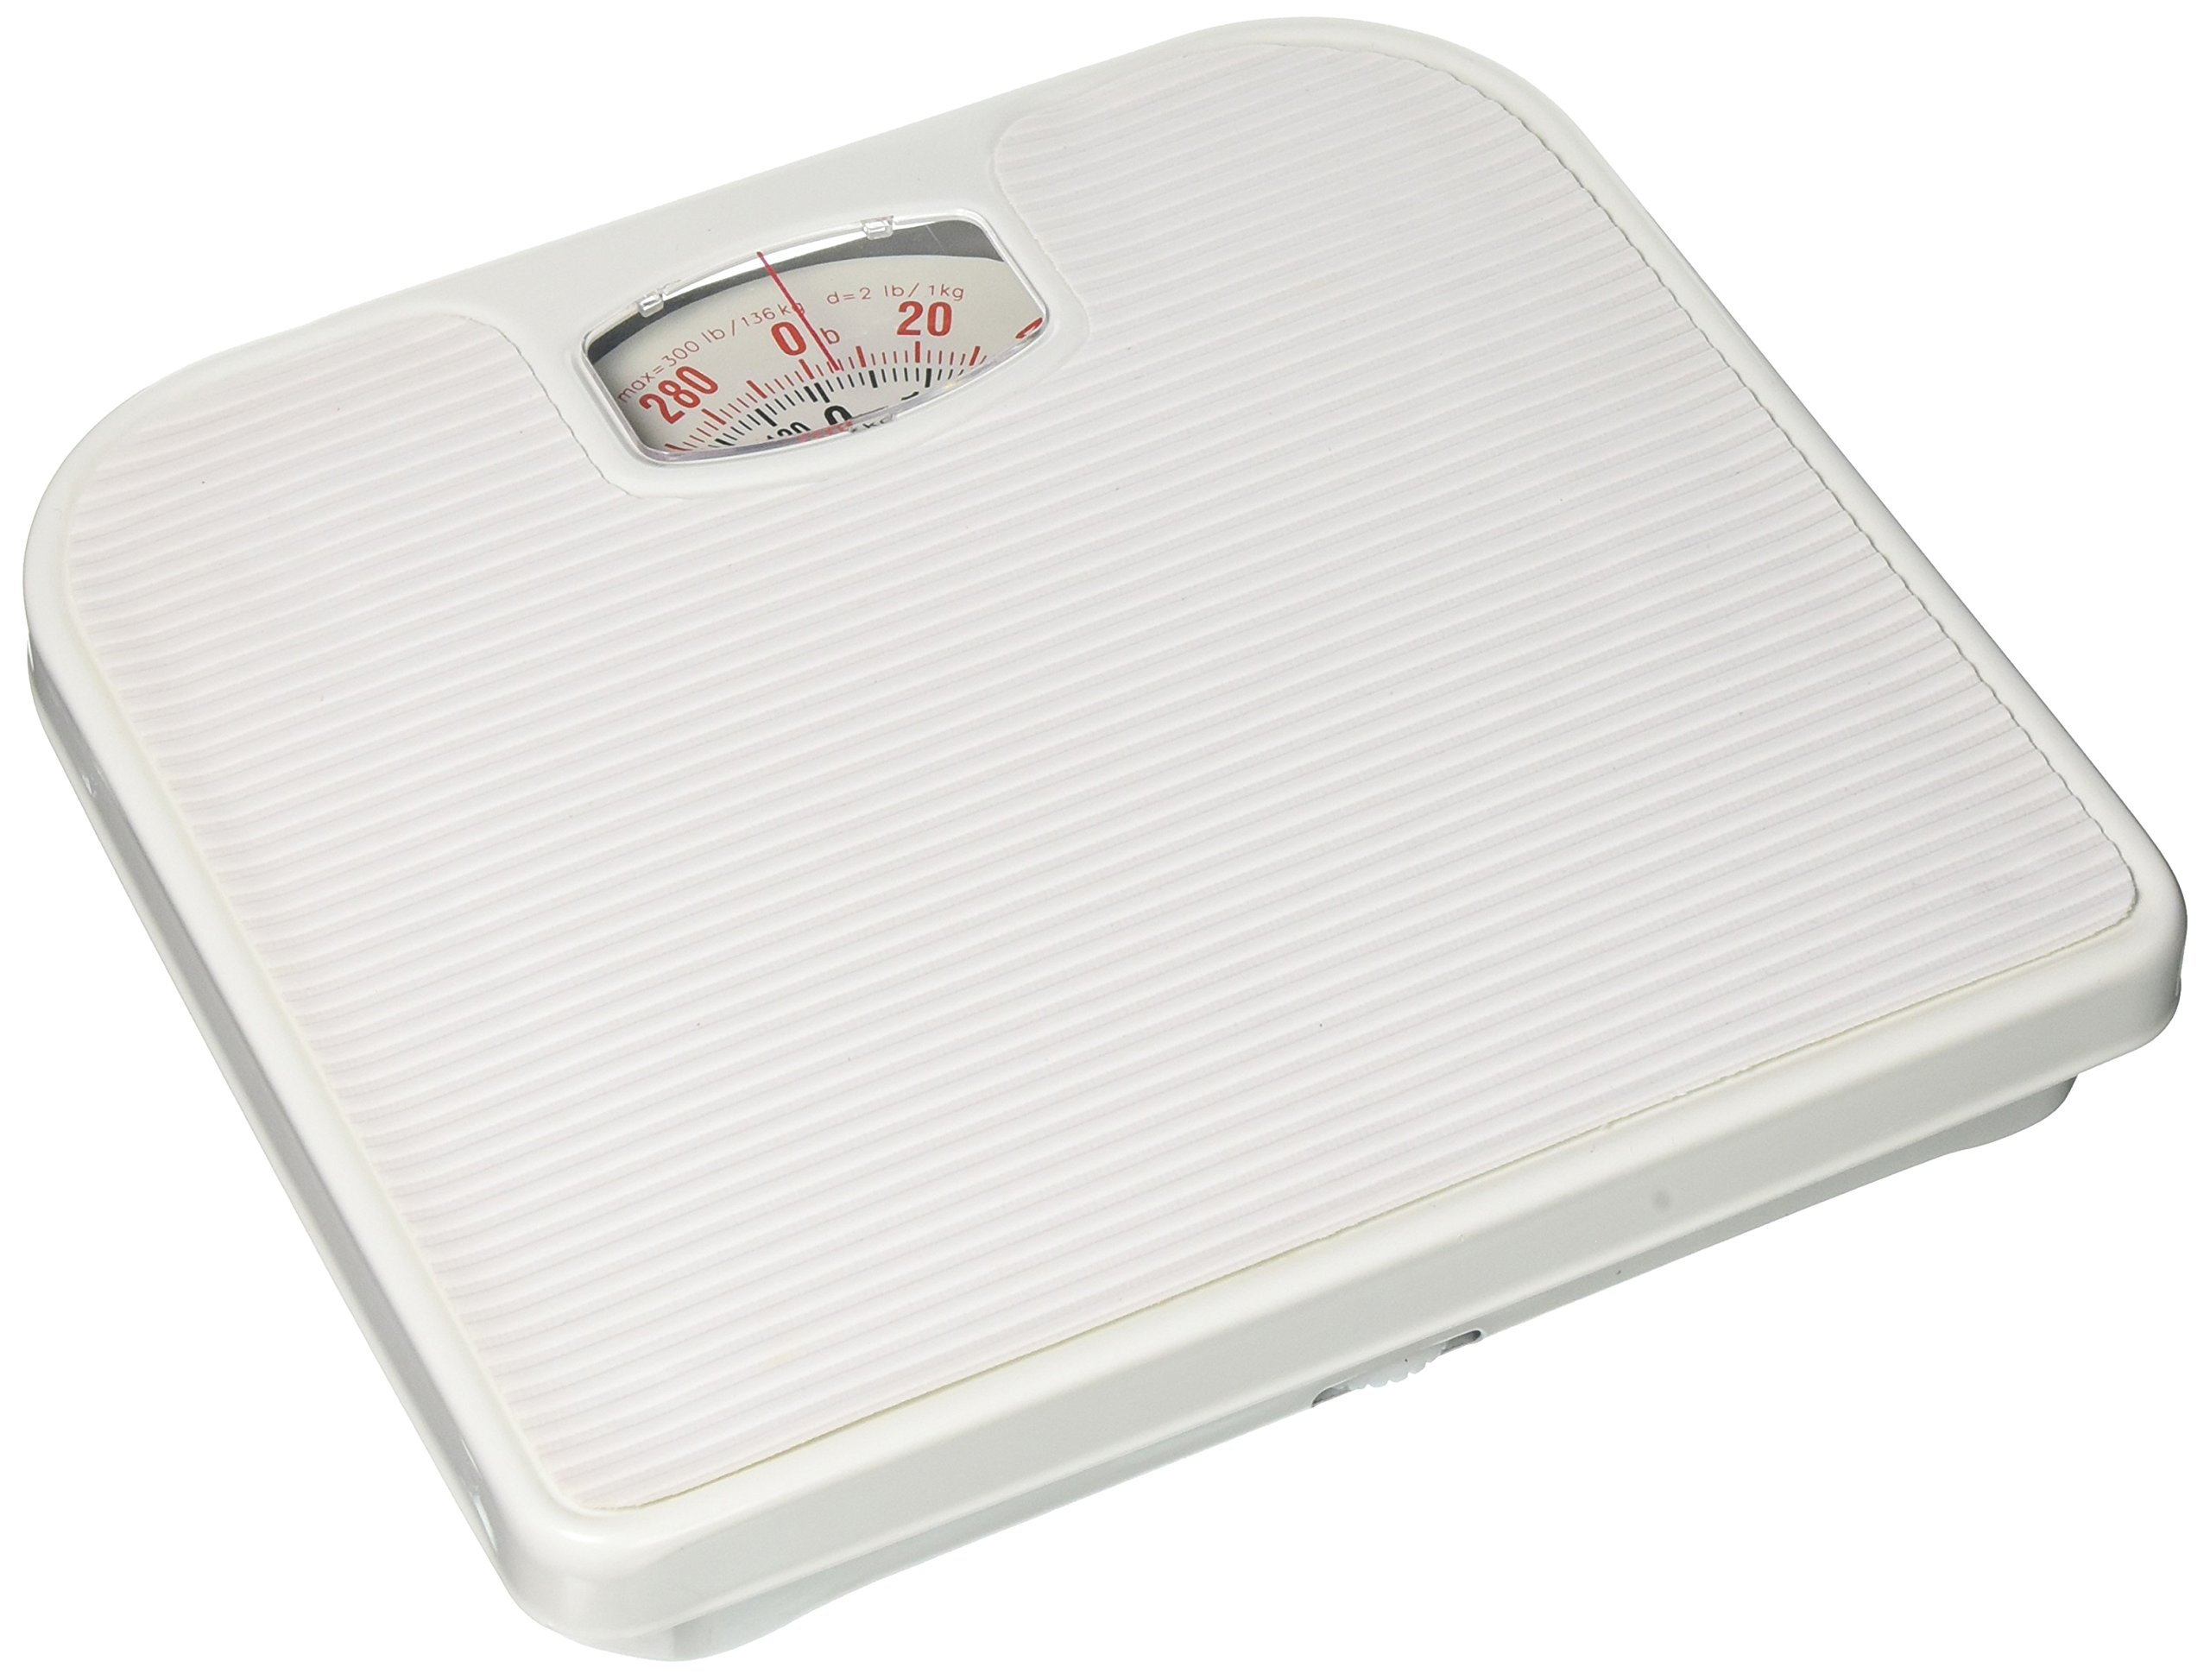 Uniware Mechanical Personal Scale (Black) Maximum Weight 130 Kg / 286lb [8516]